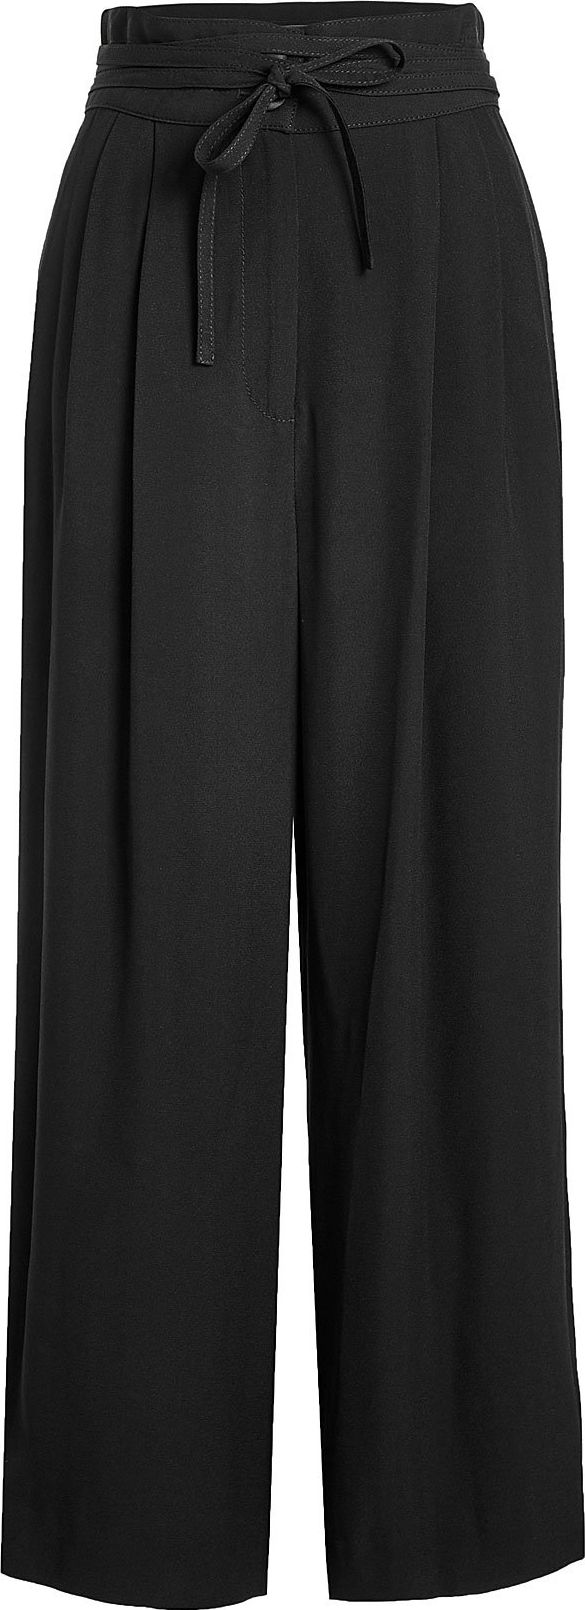 MARC JACOBS - Wide Leg Cropped Pants